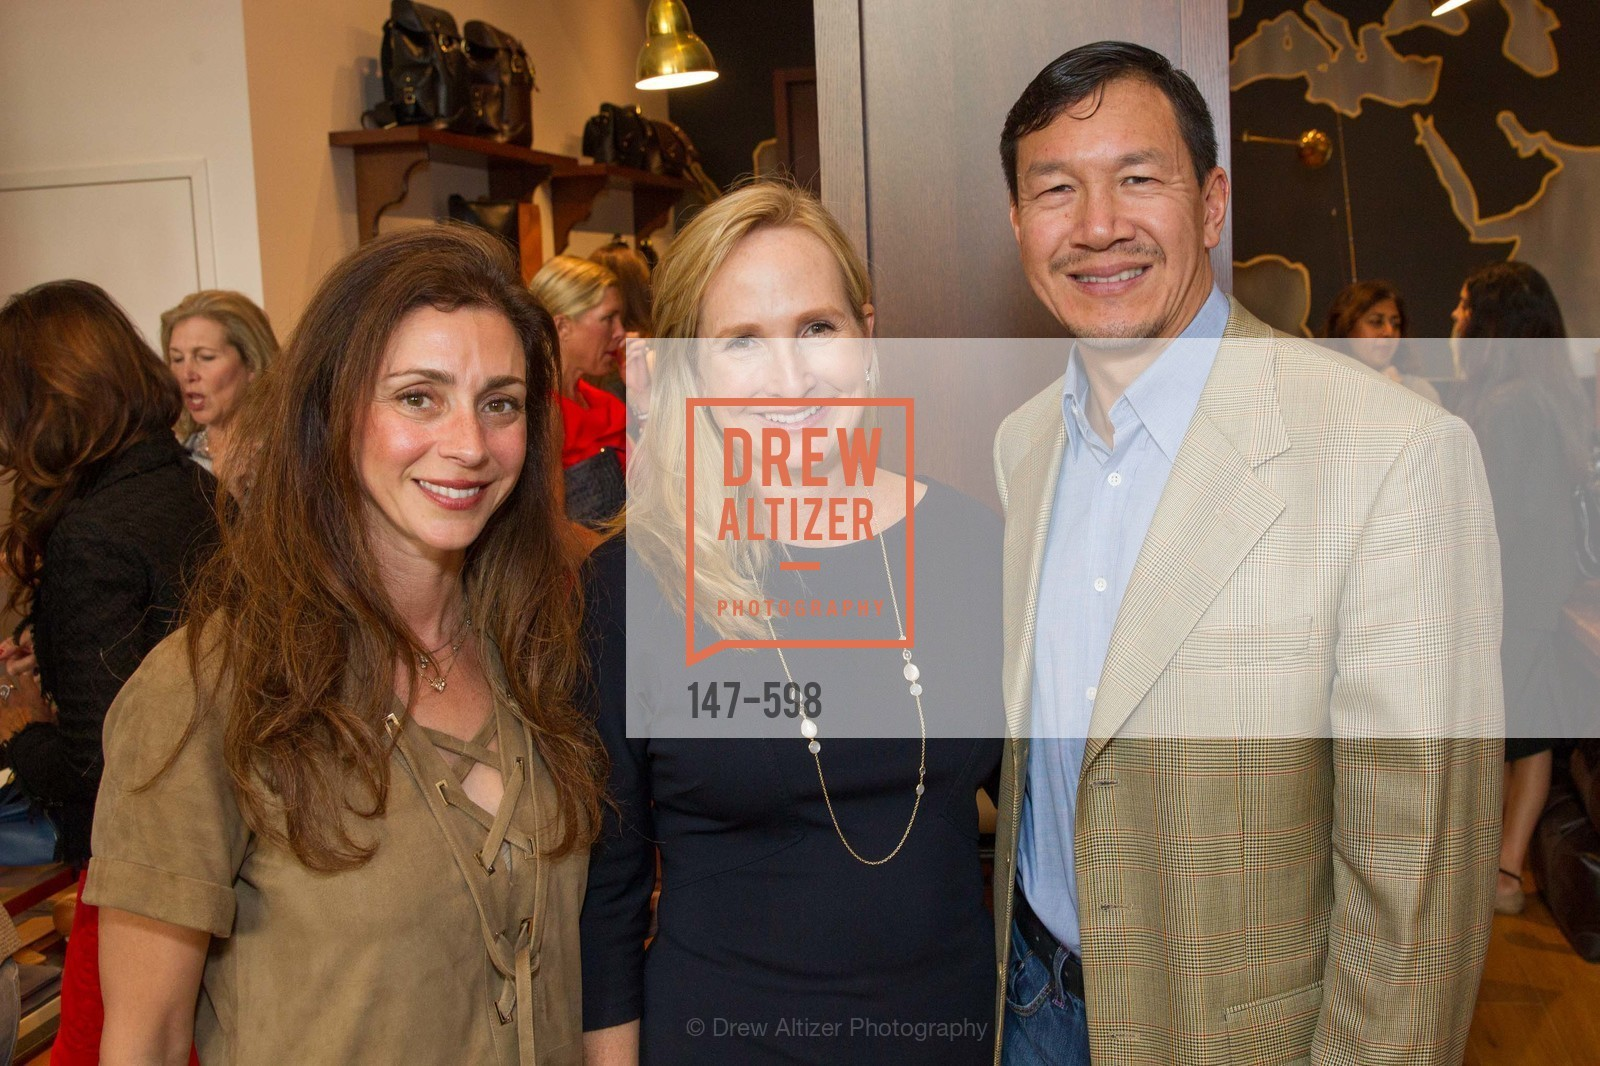 Maryam Muduroglu, Anne Pedrero, Tim Wu, GHURKA FALL FASHION Press Preview Honoring the ZOO BOARD, US, October 7th, 2014,Drew Altizer, Drew Altizer Photography, full-service agency, private events, San Francisco photographer, photographer california